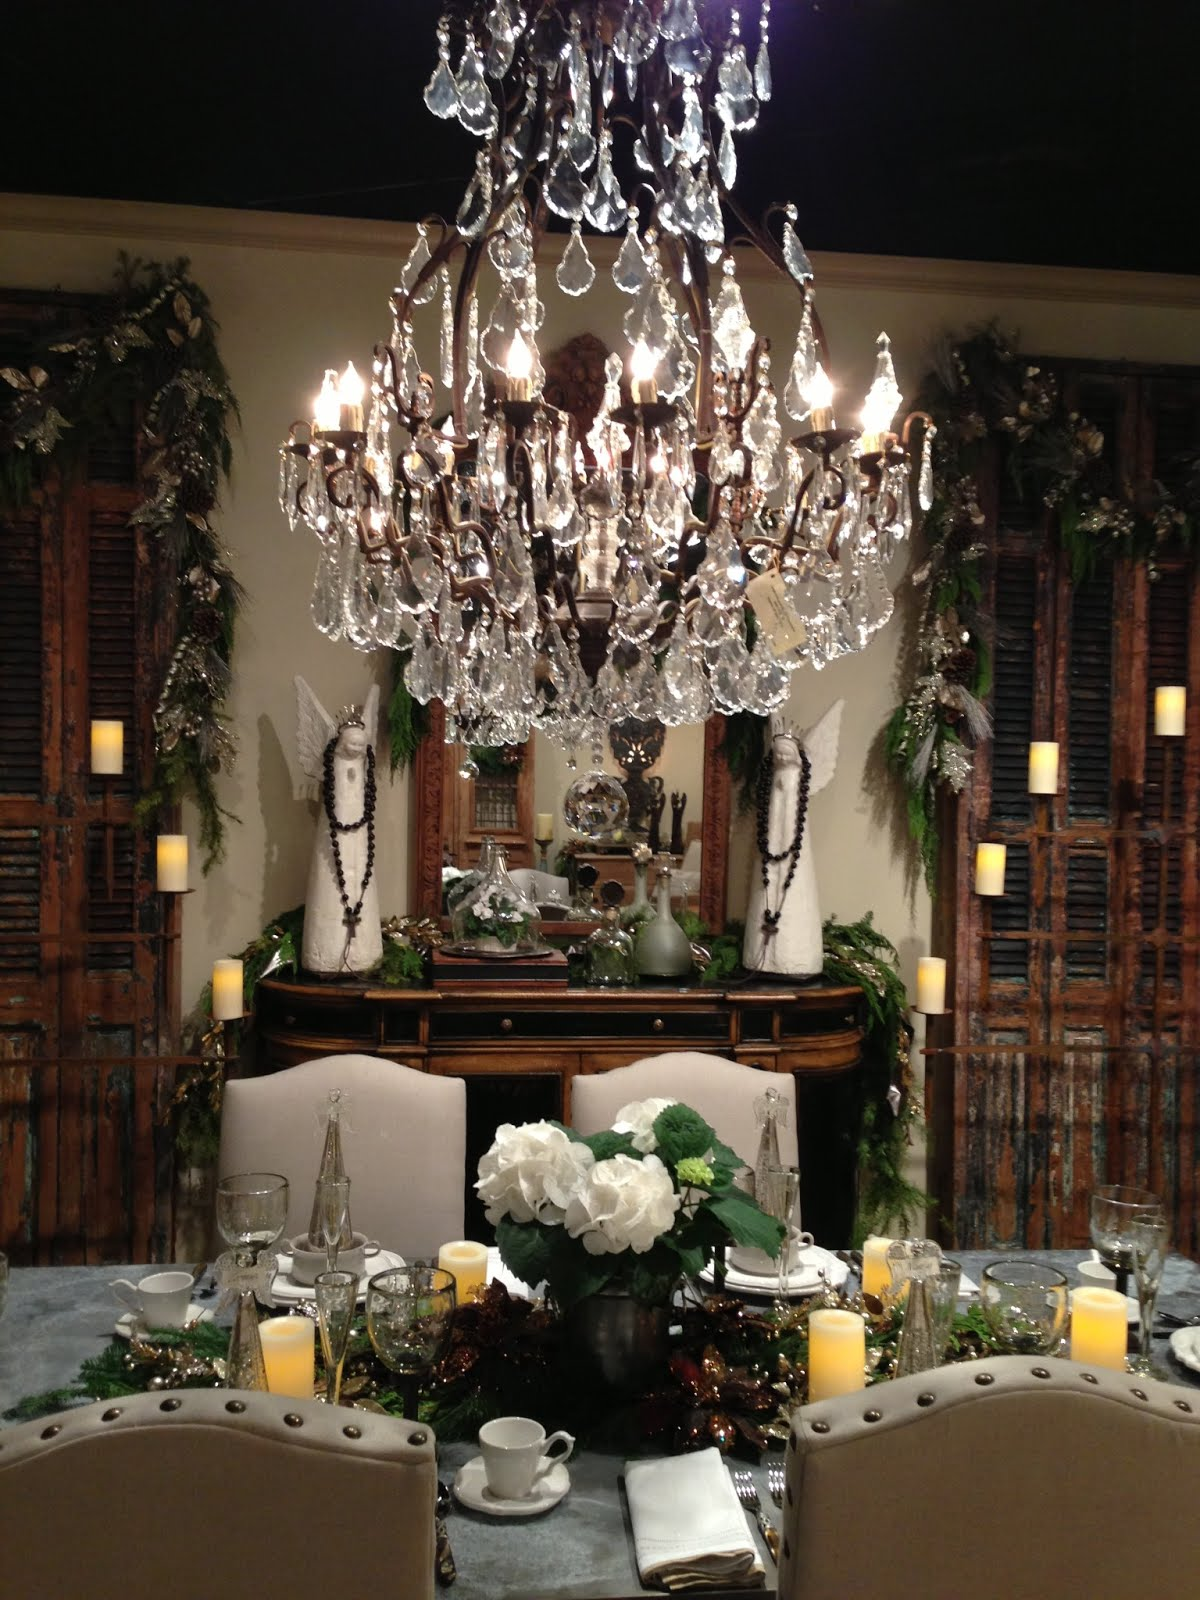 Design House Showroom  - Connie LeFevere and her team created this beautiful Christmas vignette!